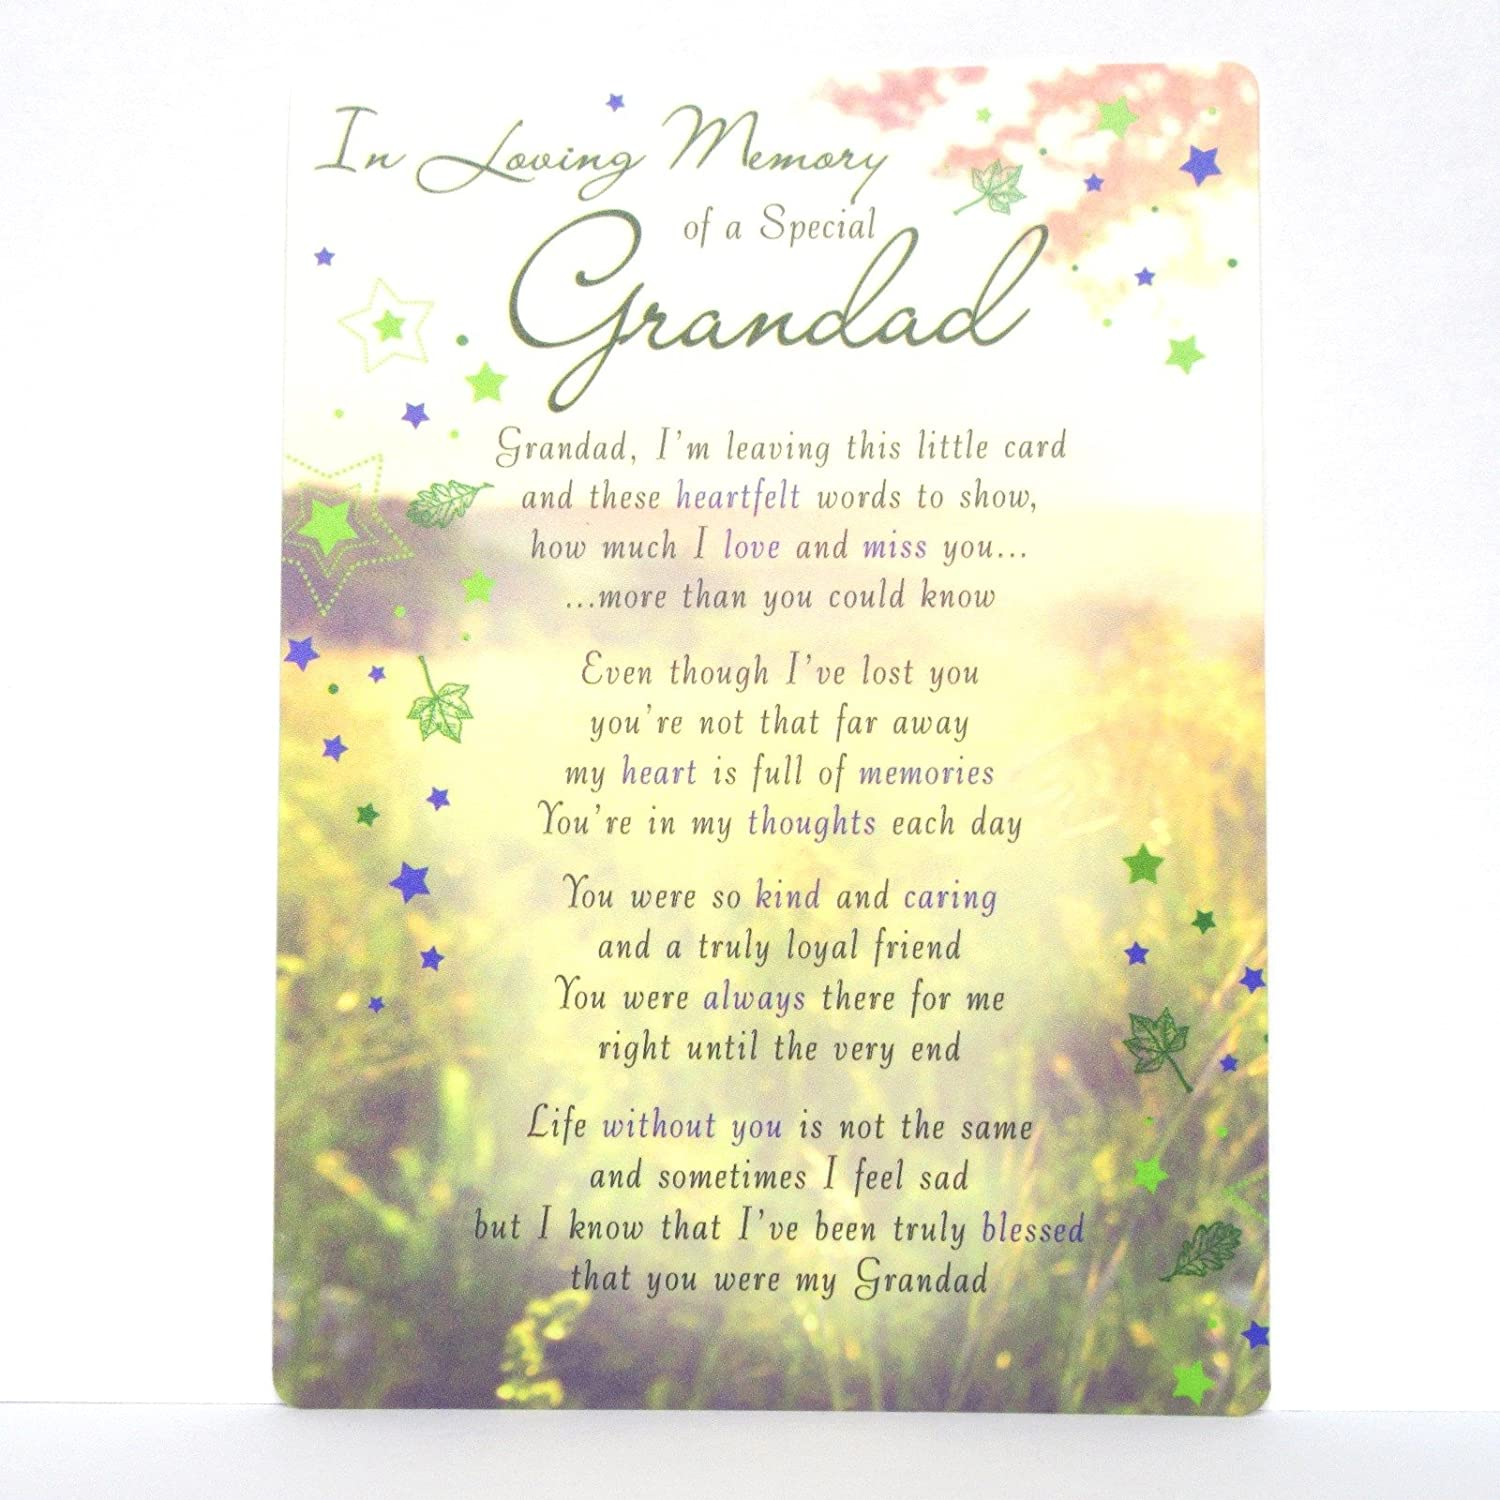 """In Loving Memory of a Special Grandad"" Plastic Grave Card Regal"